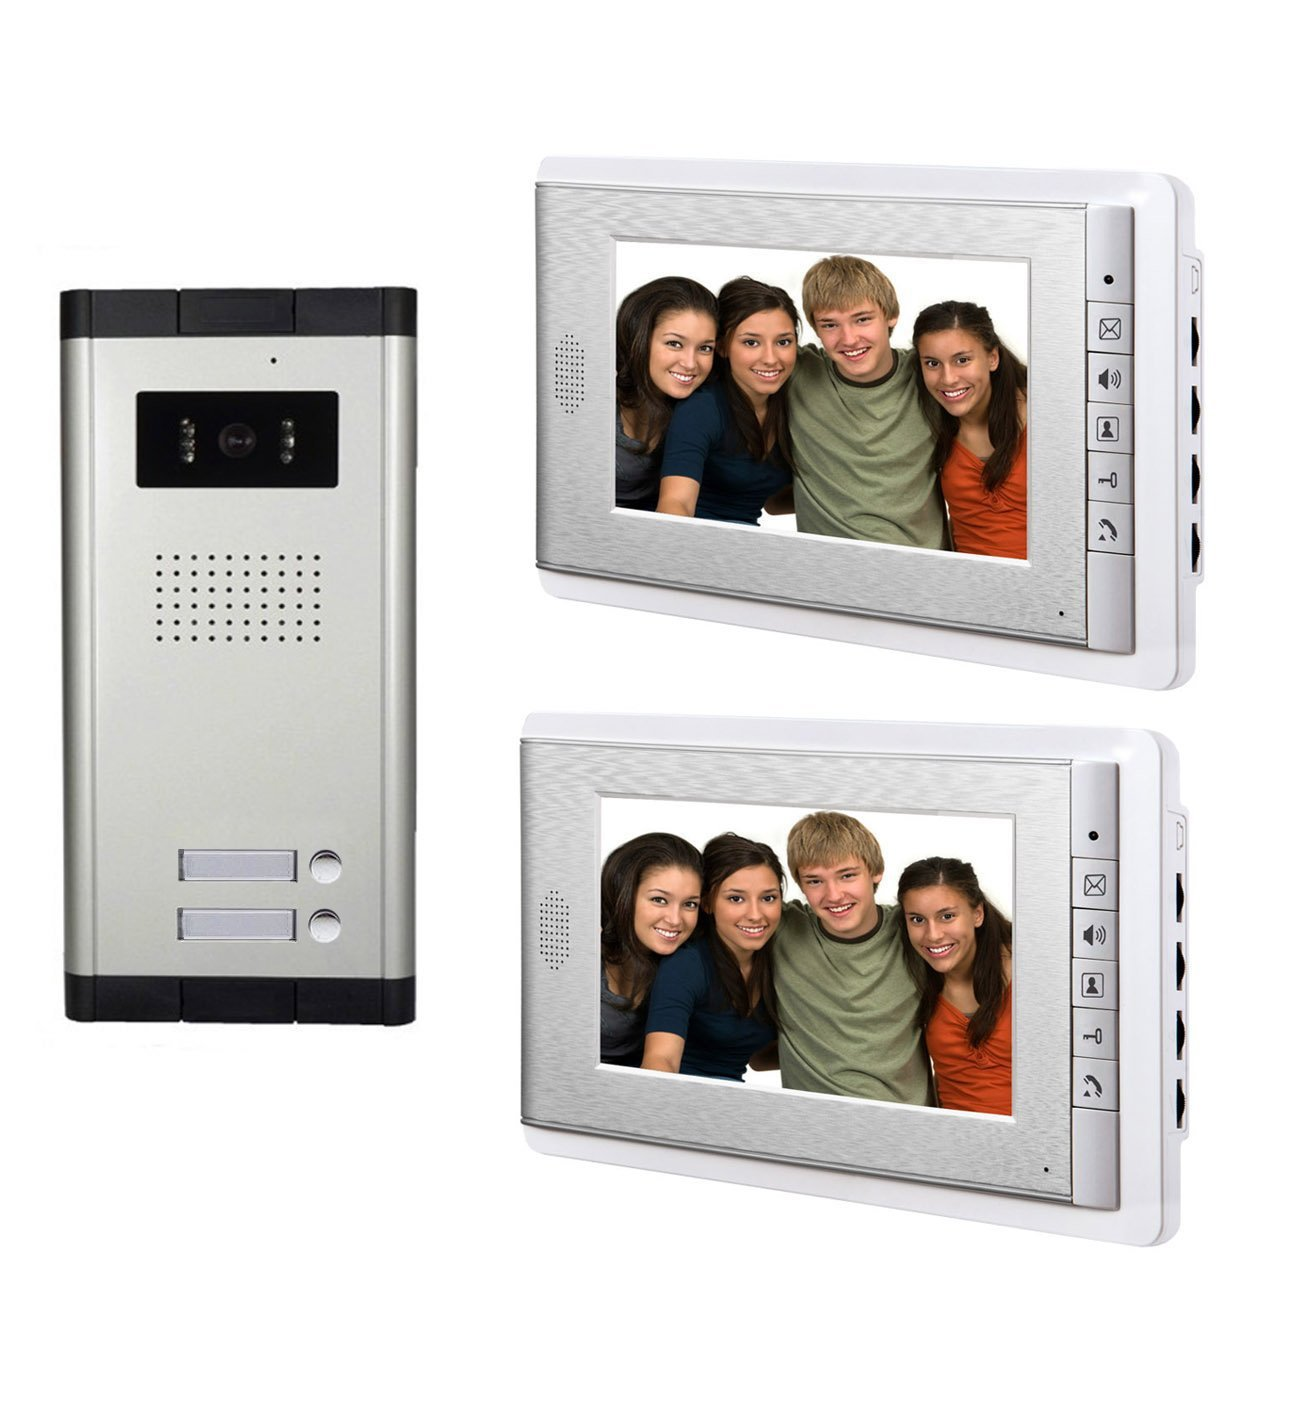 AMOCAM Wired Video Door Phone Intercom System,Video Doorbell Kits, 1 pcs Night Vision Camera, 2 pcs 7 inch LCD Monitor, for 2 Units Apartment, Support Monitoring, Unlock, Dual way Door Talking